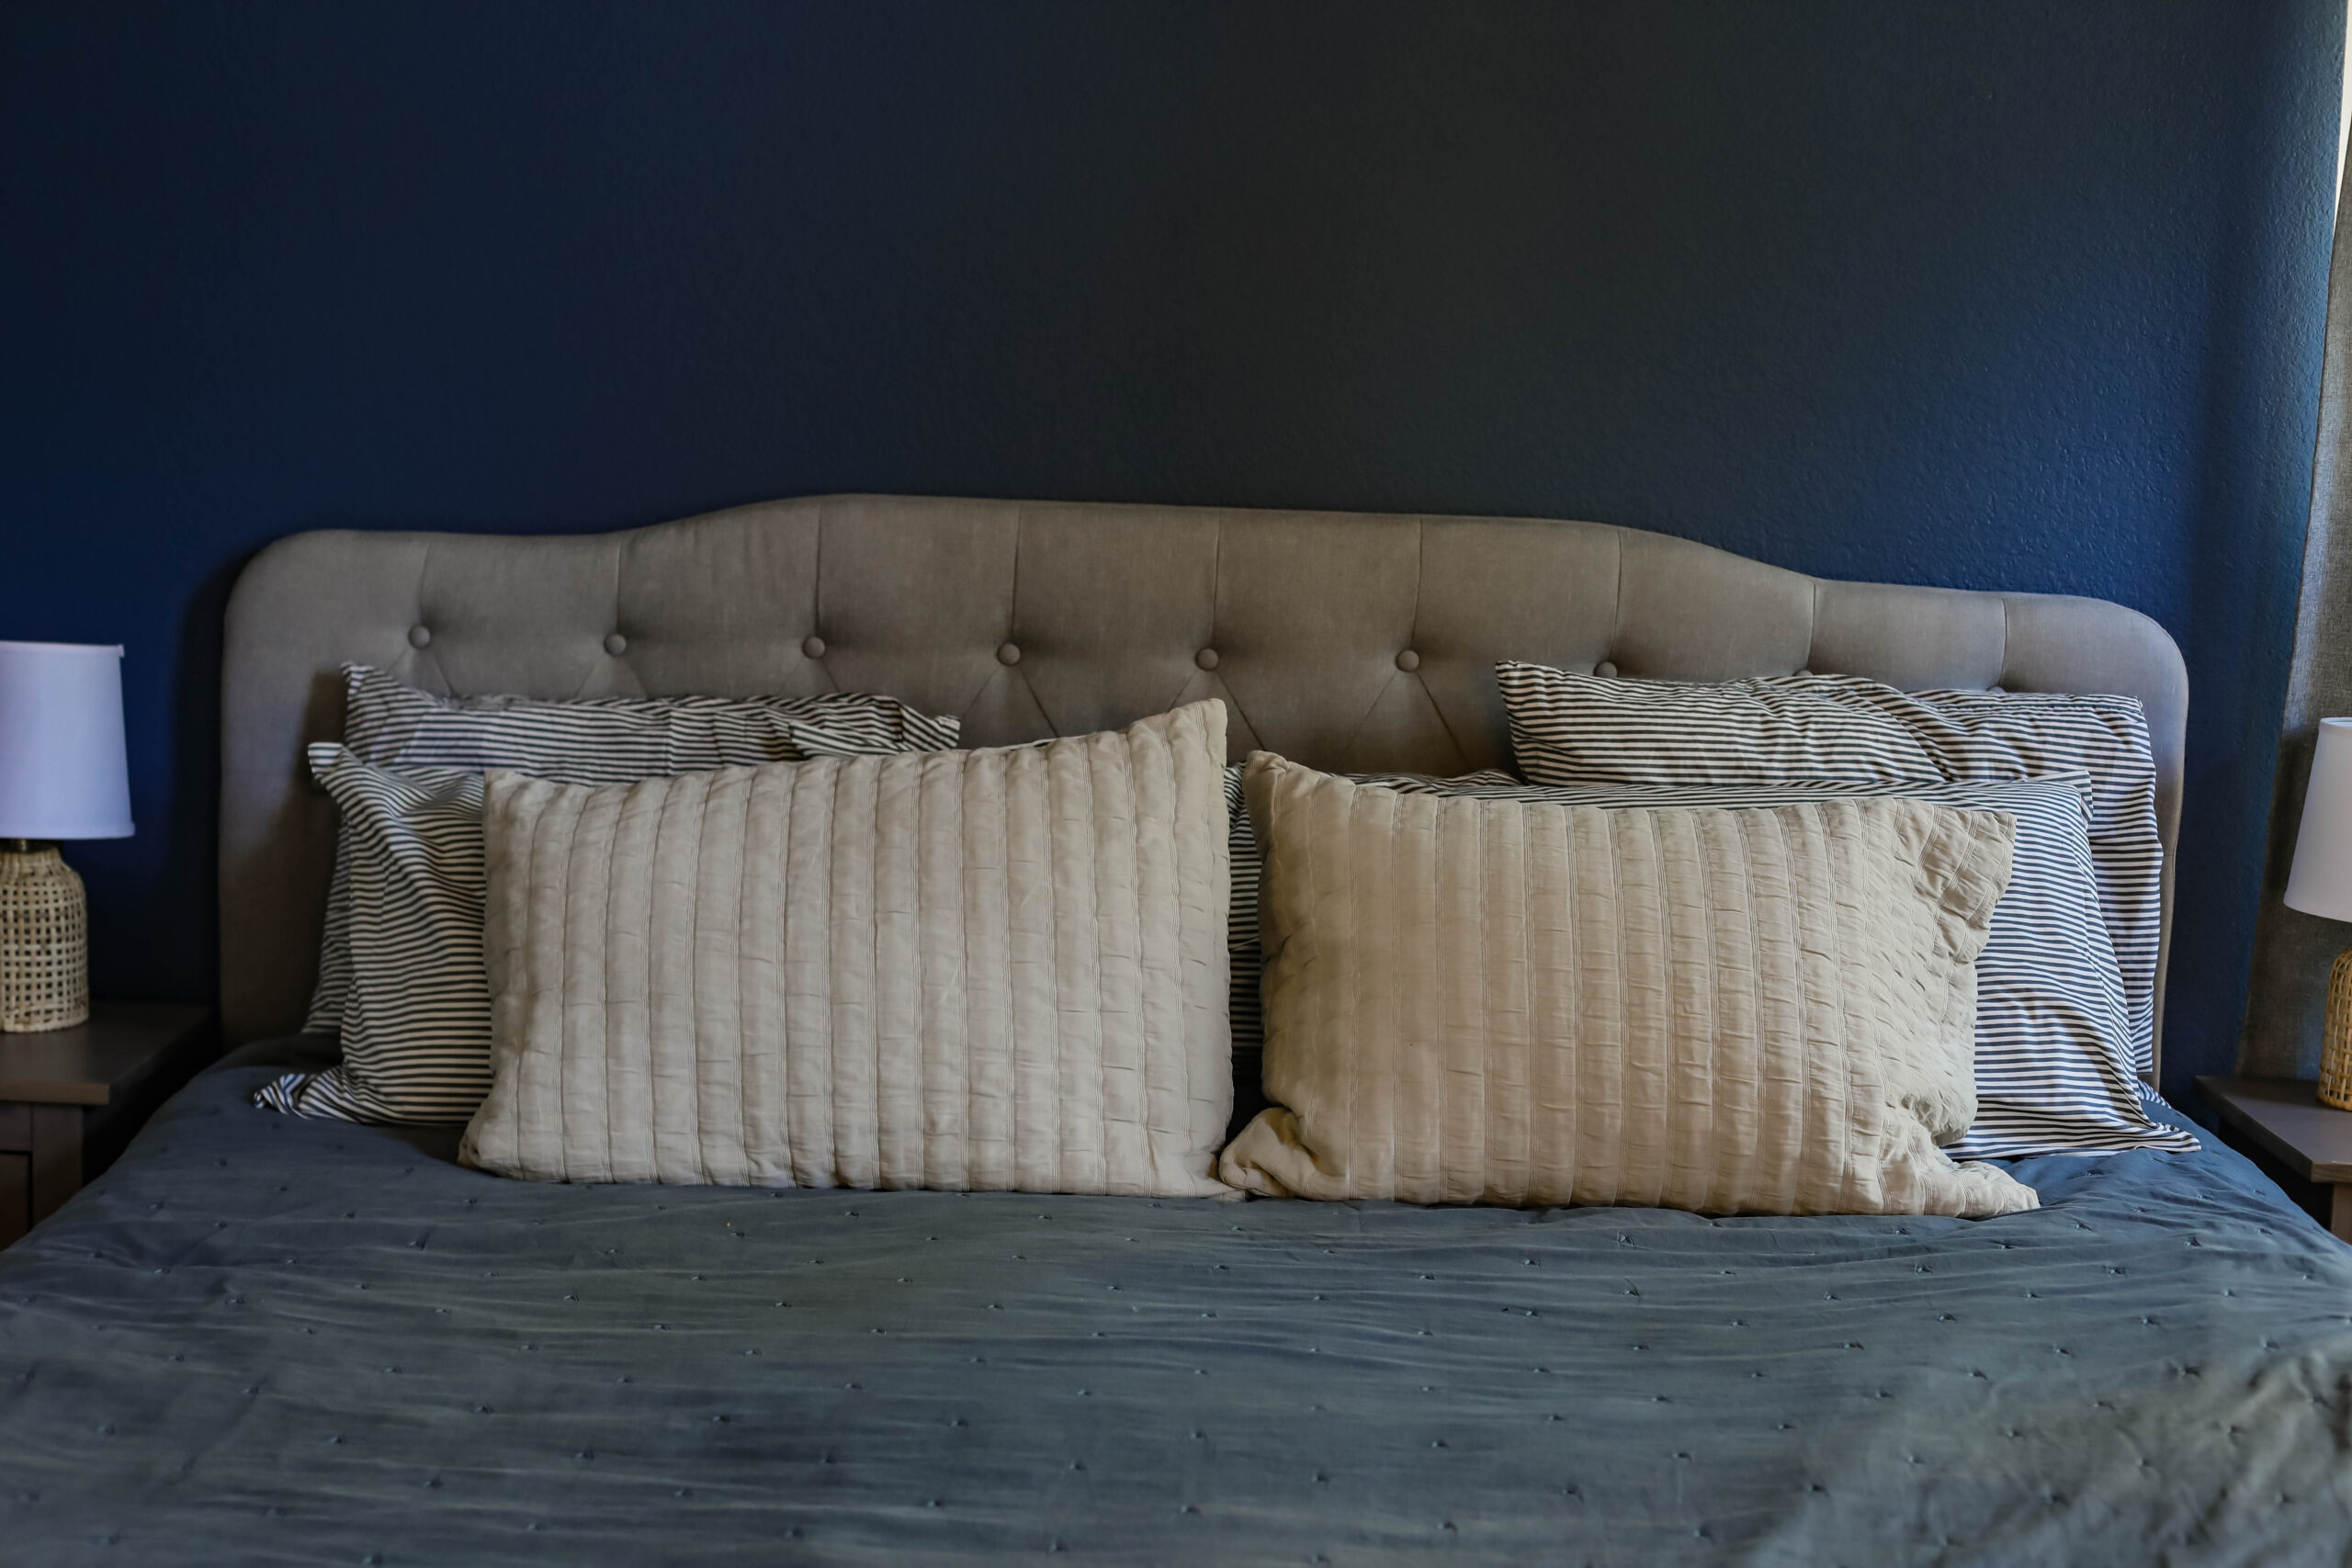 Looking for striped bedding? This navy blue seersucker bedding is PERFECT!